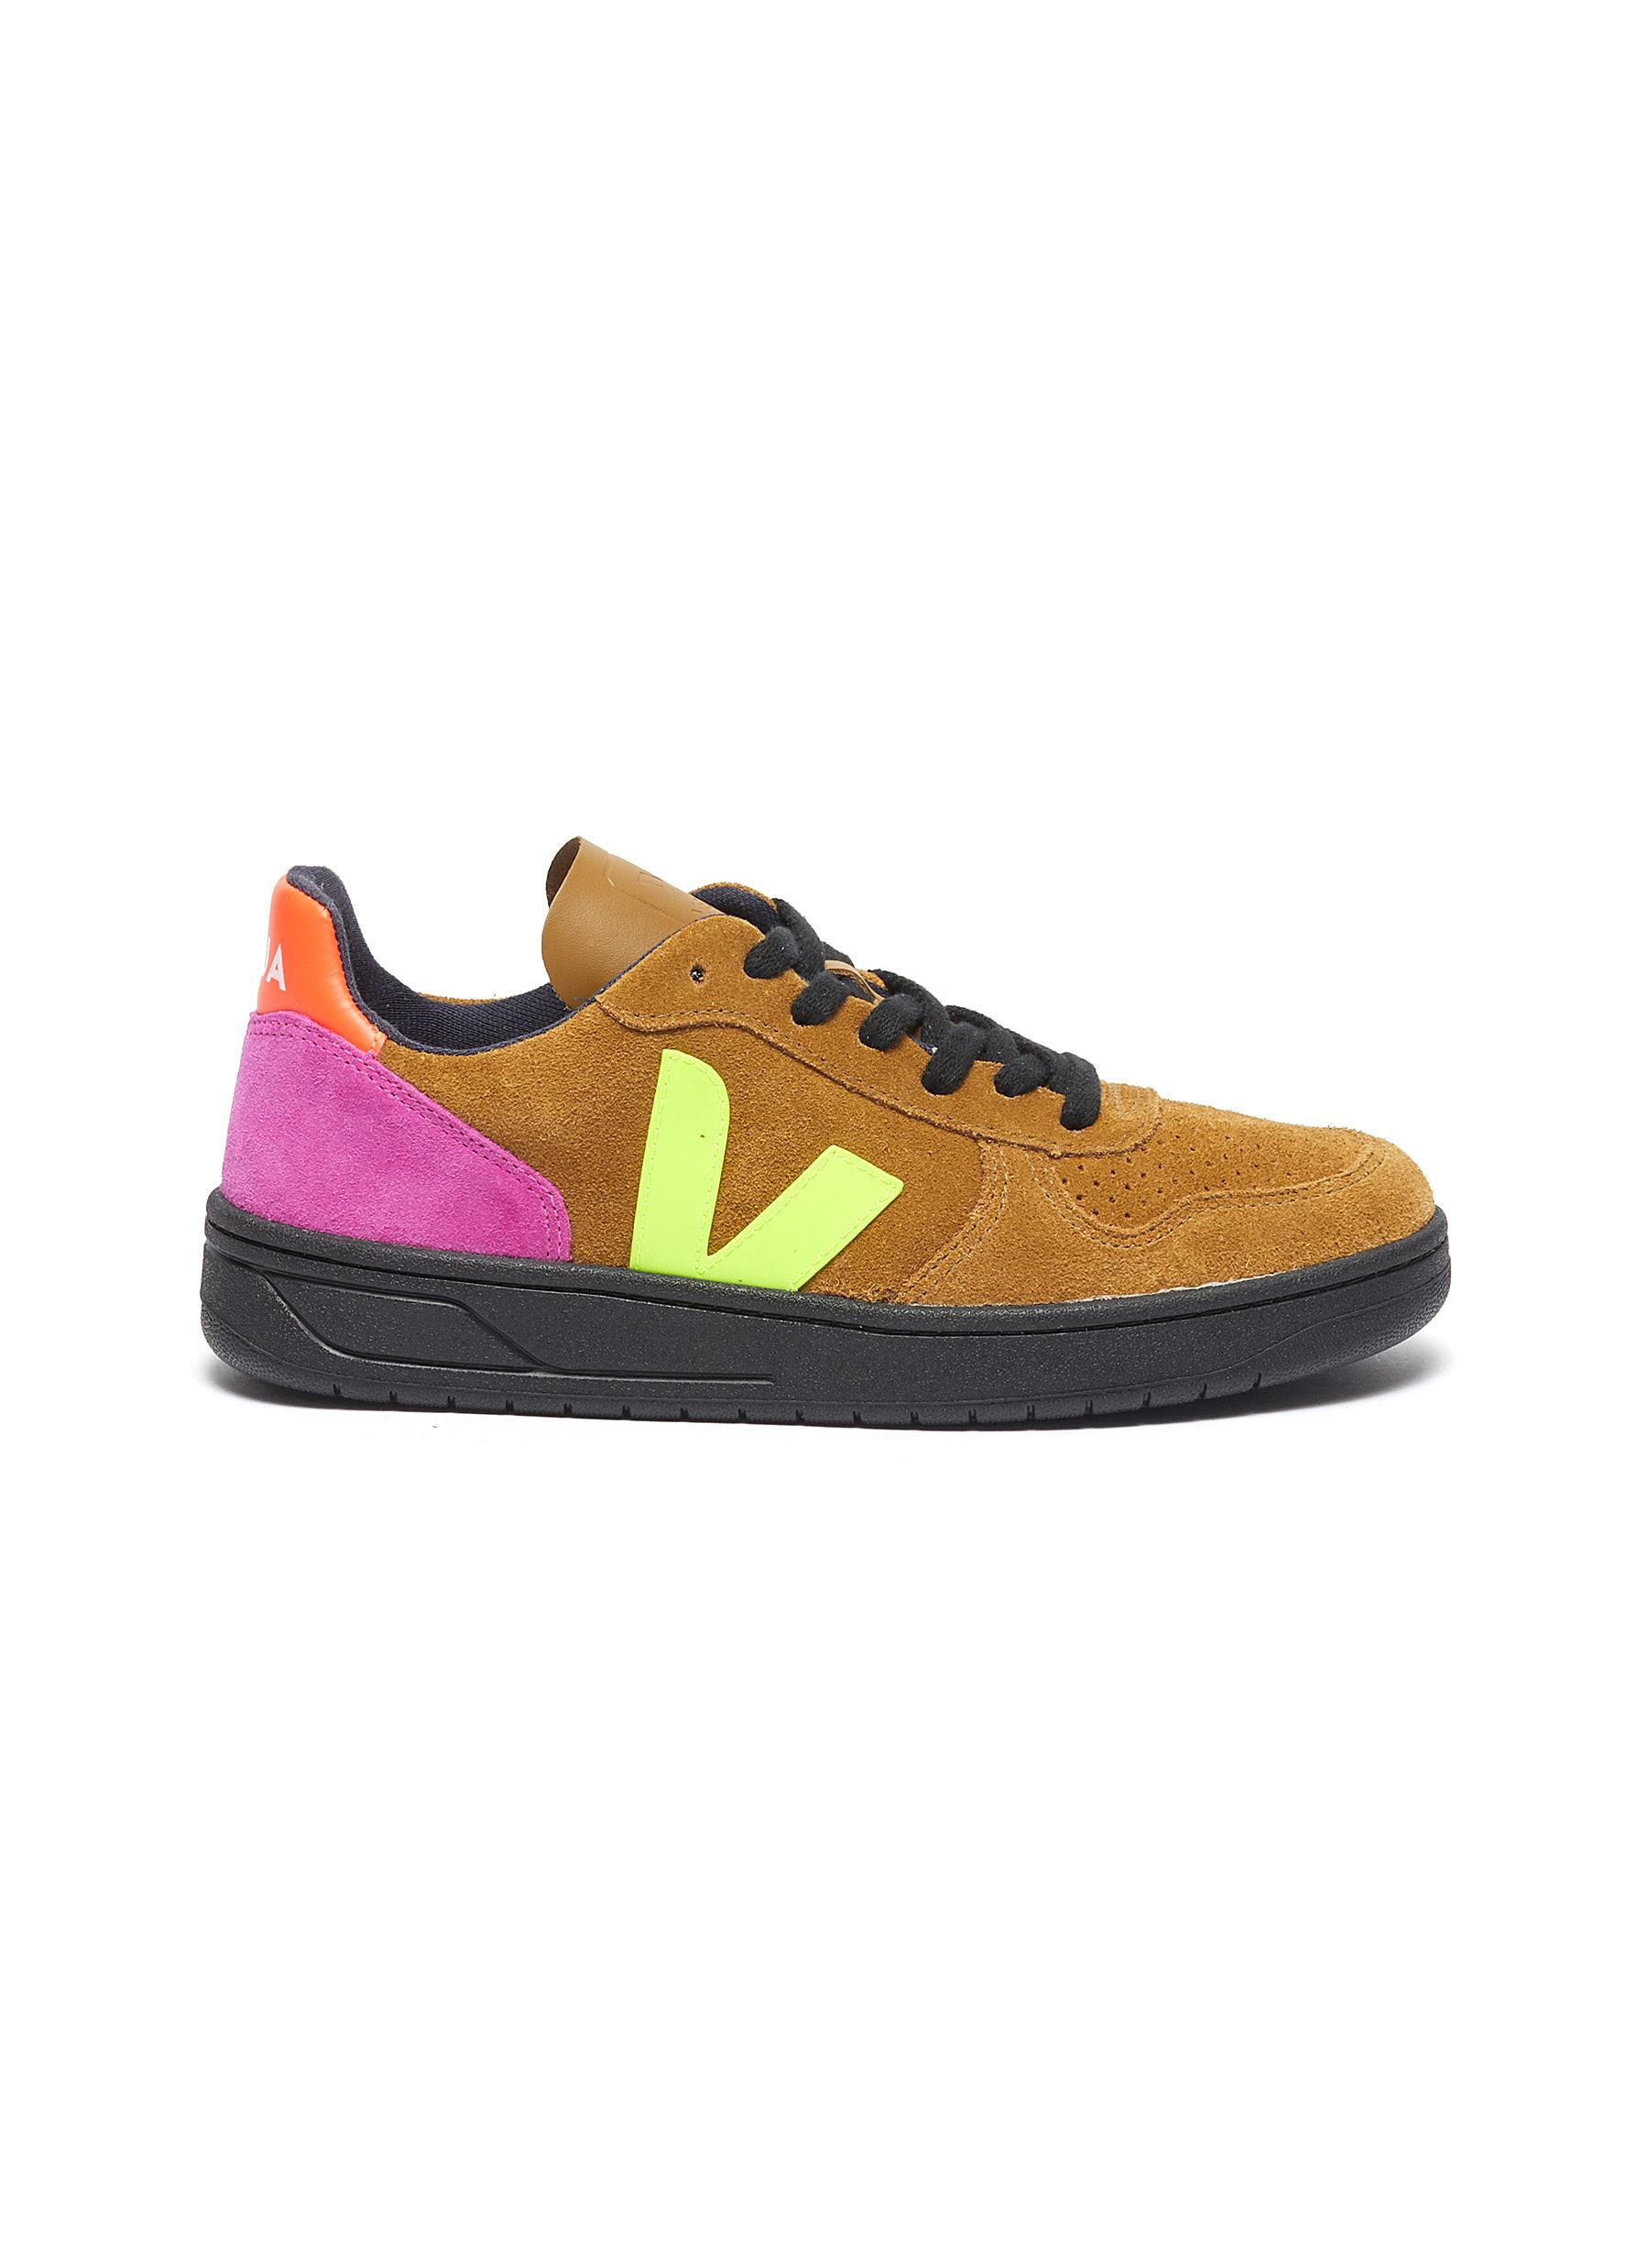 V-10 colourblock suede sneakers by Veja